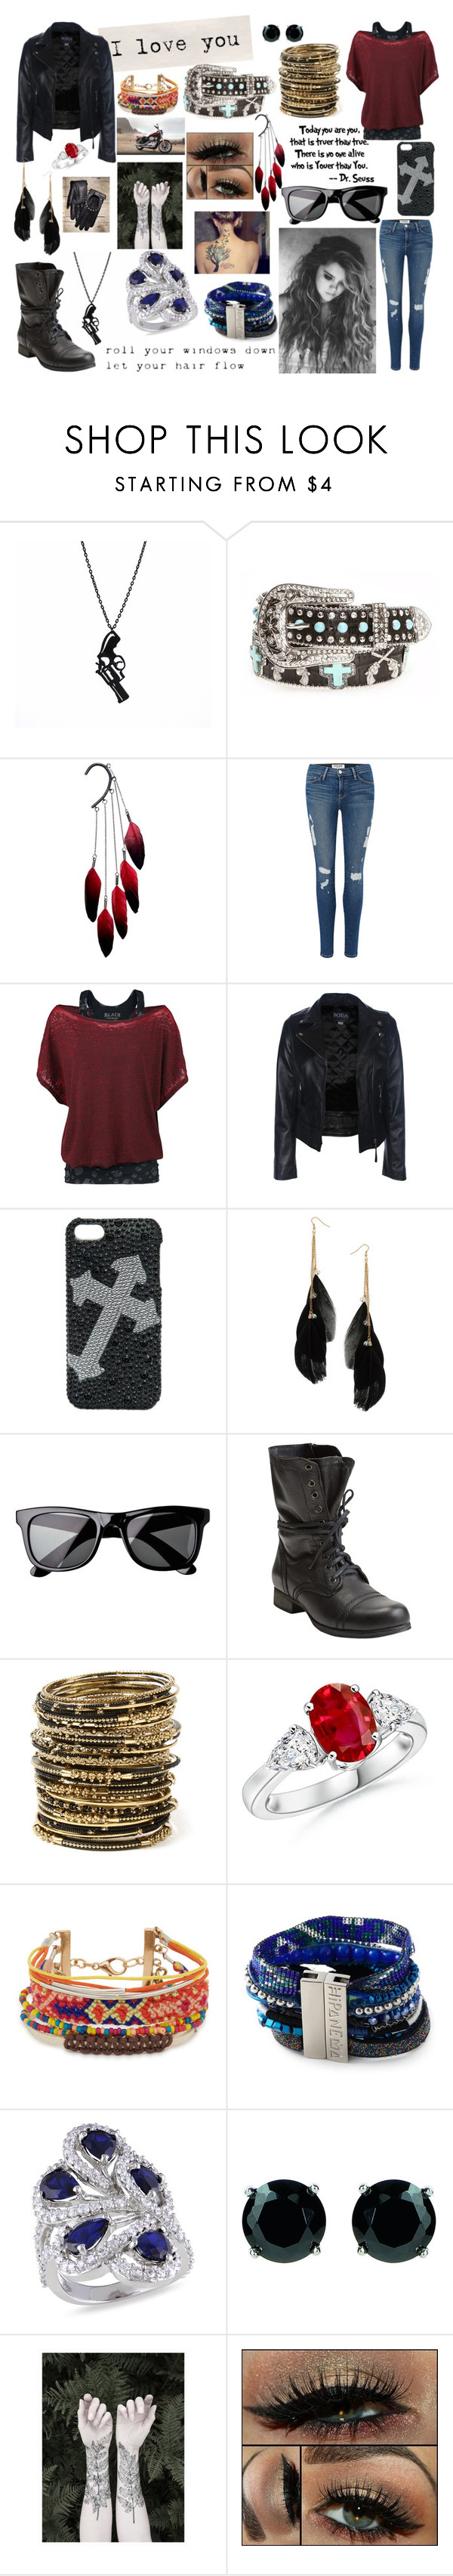 """roll the windows down"" by renee-love ❤ liked on Polyvore featuring Angel Ranch, Anni Jürgenson, Frame Denim, Blazin Roxx, Miss Selfridge, H&M, Steve Madden, Amrita Singh, Aéropostale and Hipanema"